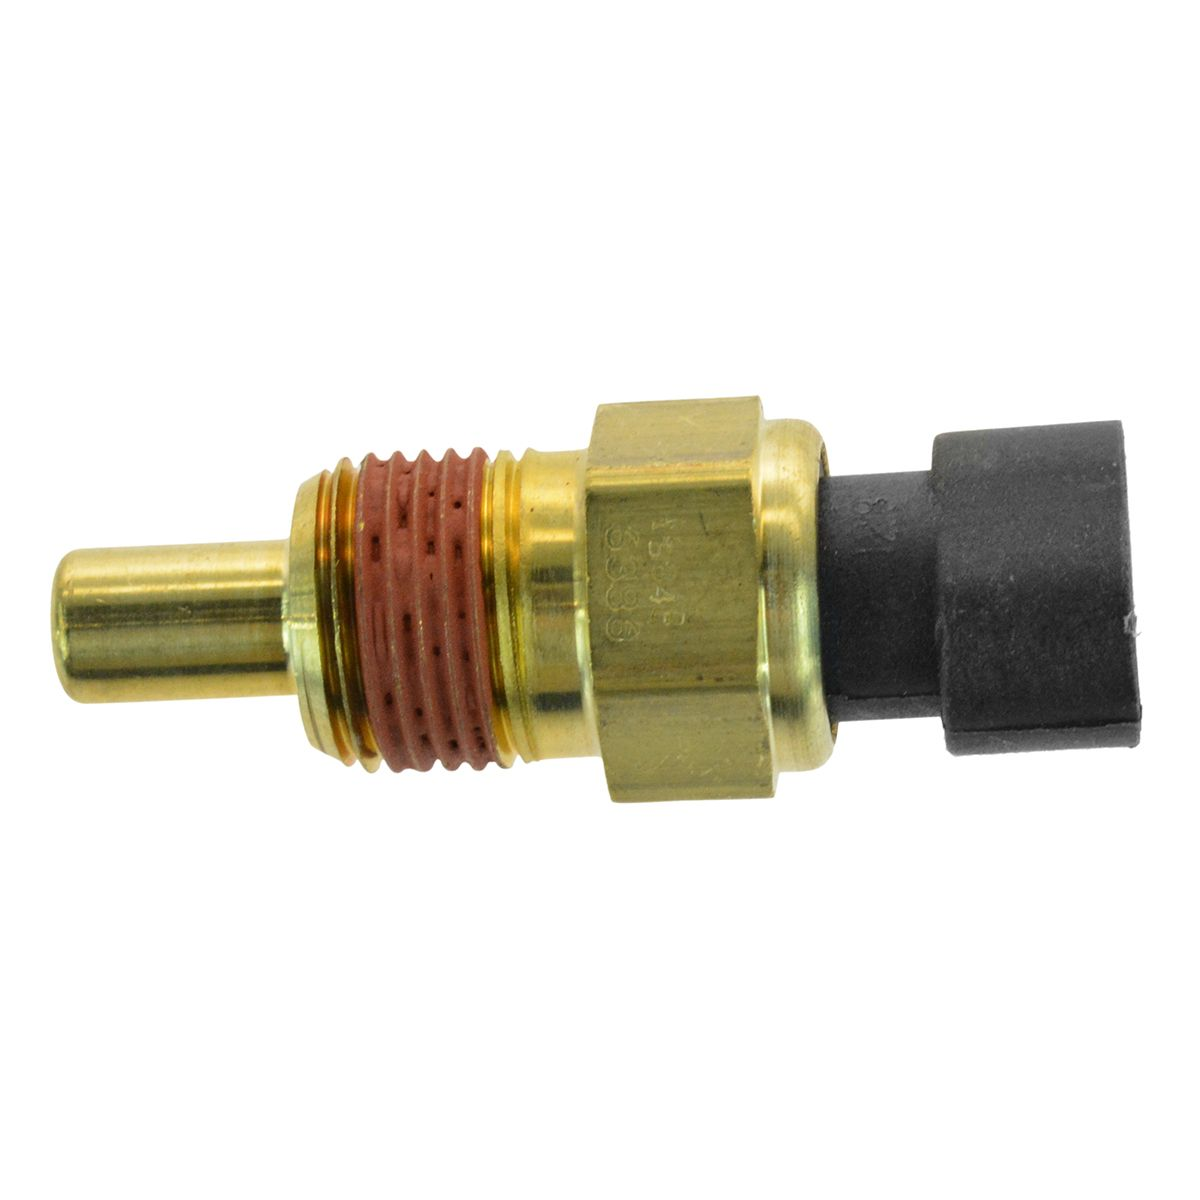 AC DELCO 213-928 Engine Coolant Temperature Sensor for Chevy GMC Jeep  Pontiac